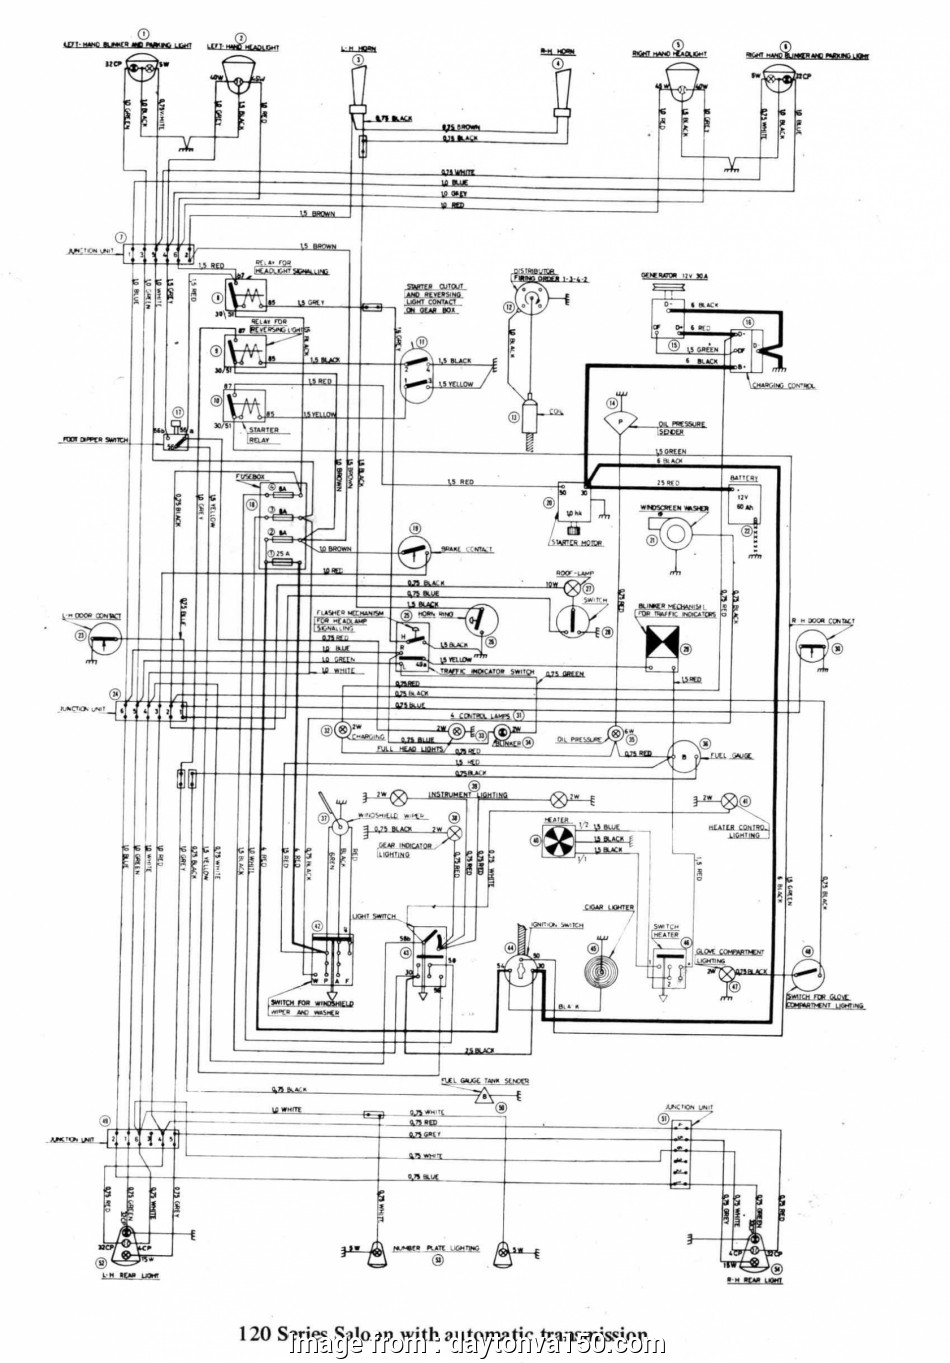 hight resolution of starter solenoid relay wiring diagram wiring diagram ford starter relay best wiring diagram car